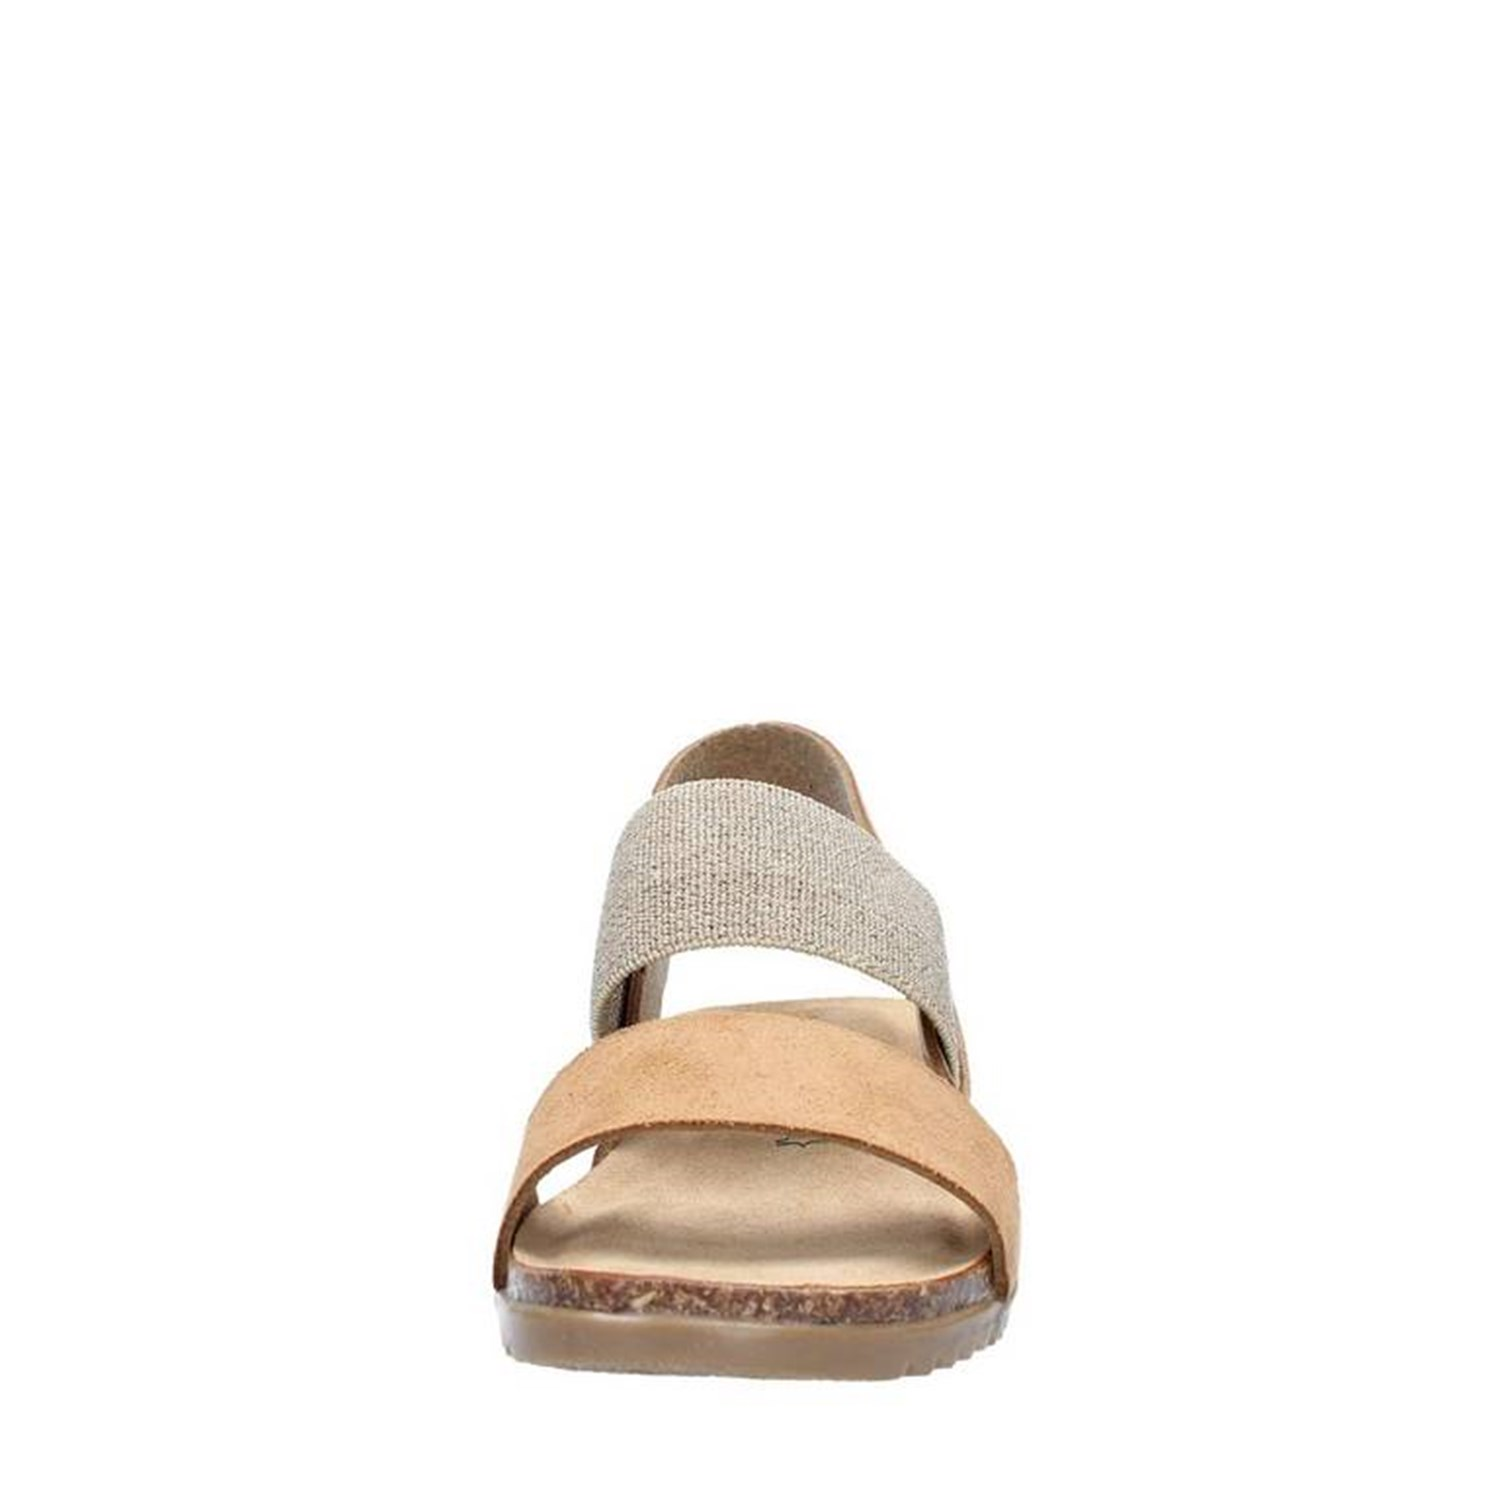 Bionatura Shoes Woman With wedge ECRU 34A848